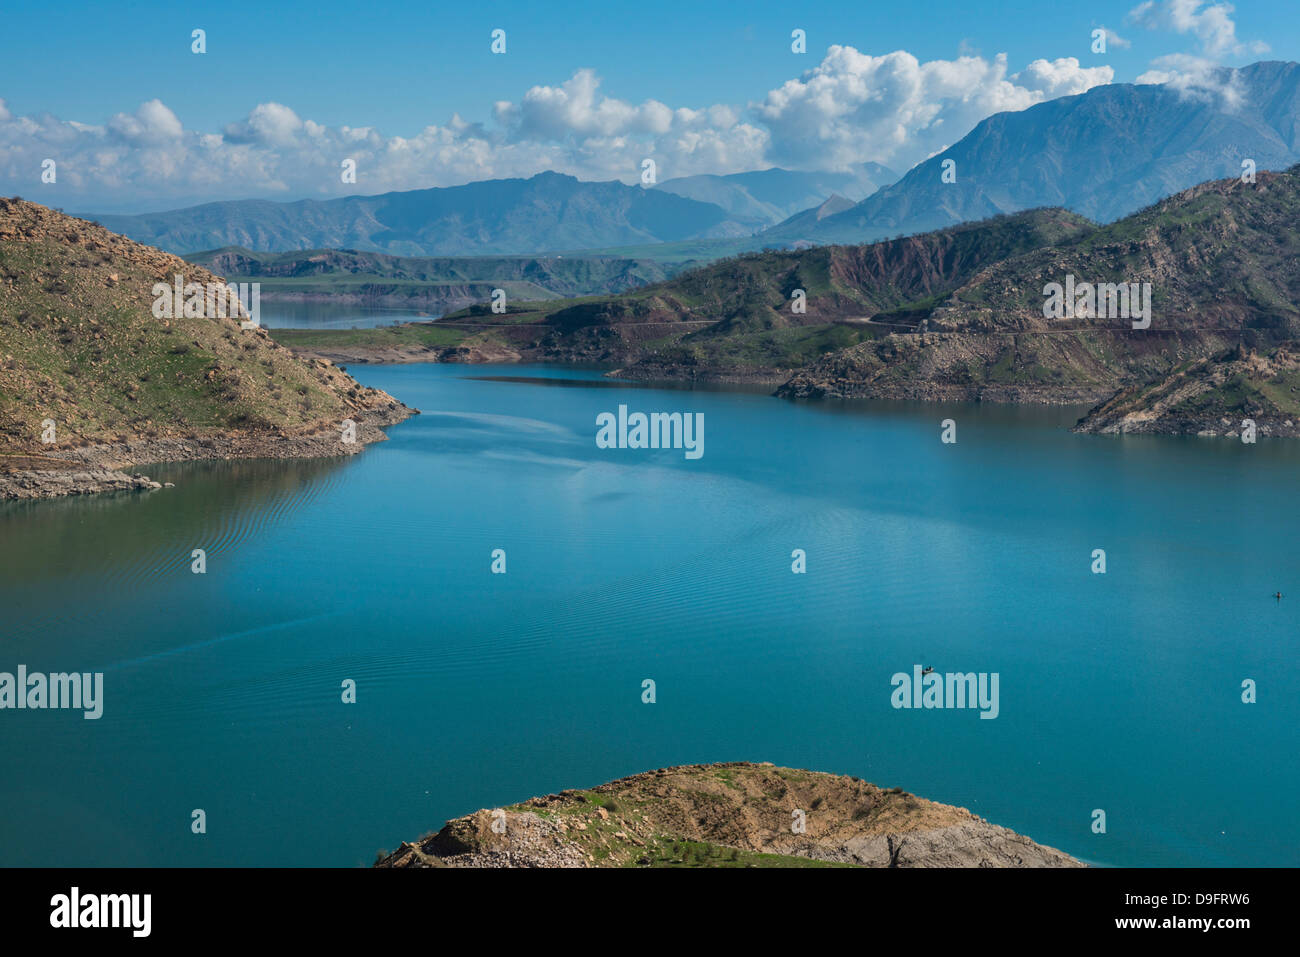 Darbandikhan artificial lake on the border of Iran, Iraq Kurdistan, Iraq, Middle East - Stock Image